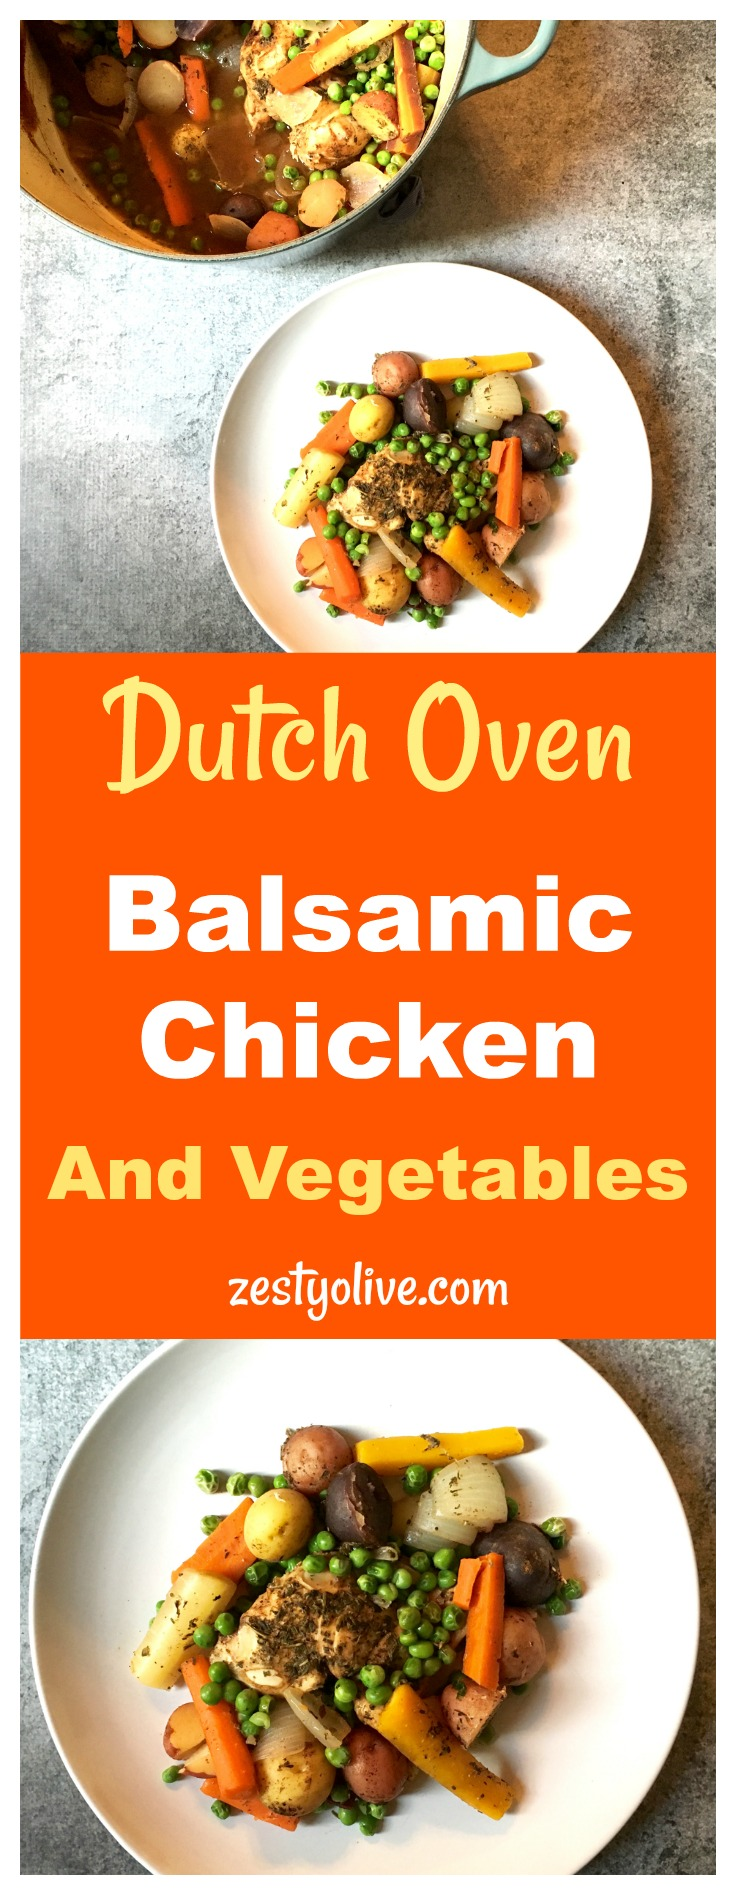 Dutch Oven Balsamic Chicken and Vegetables